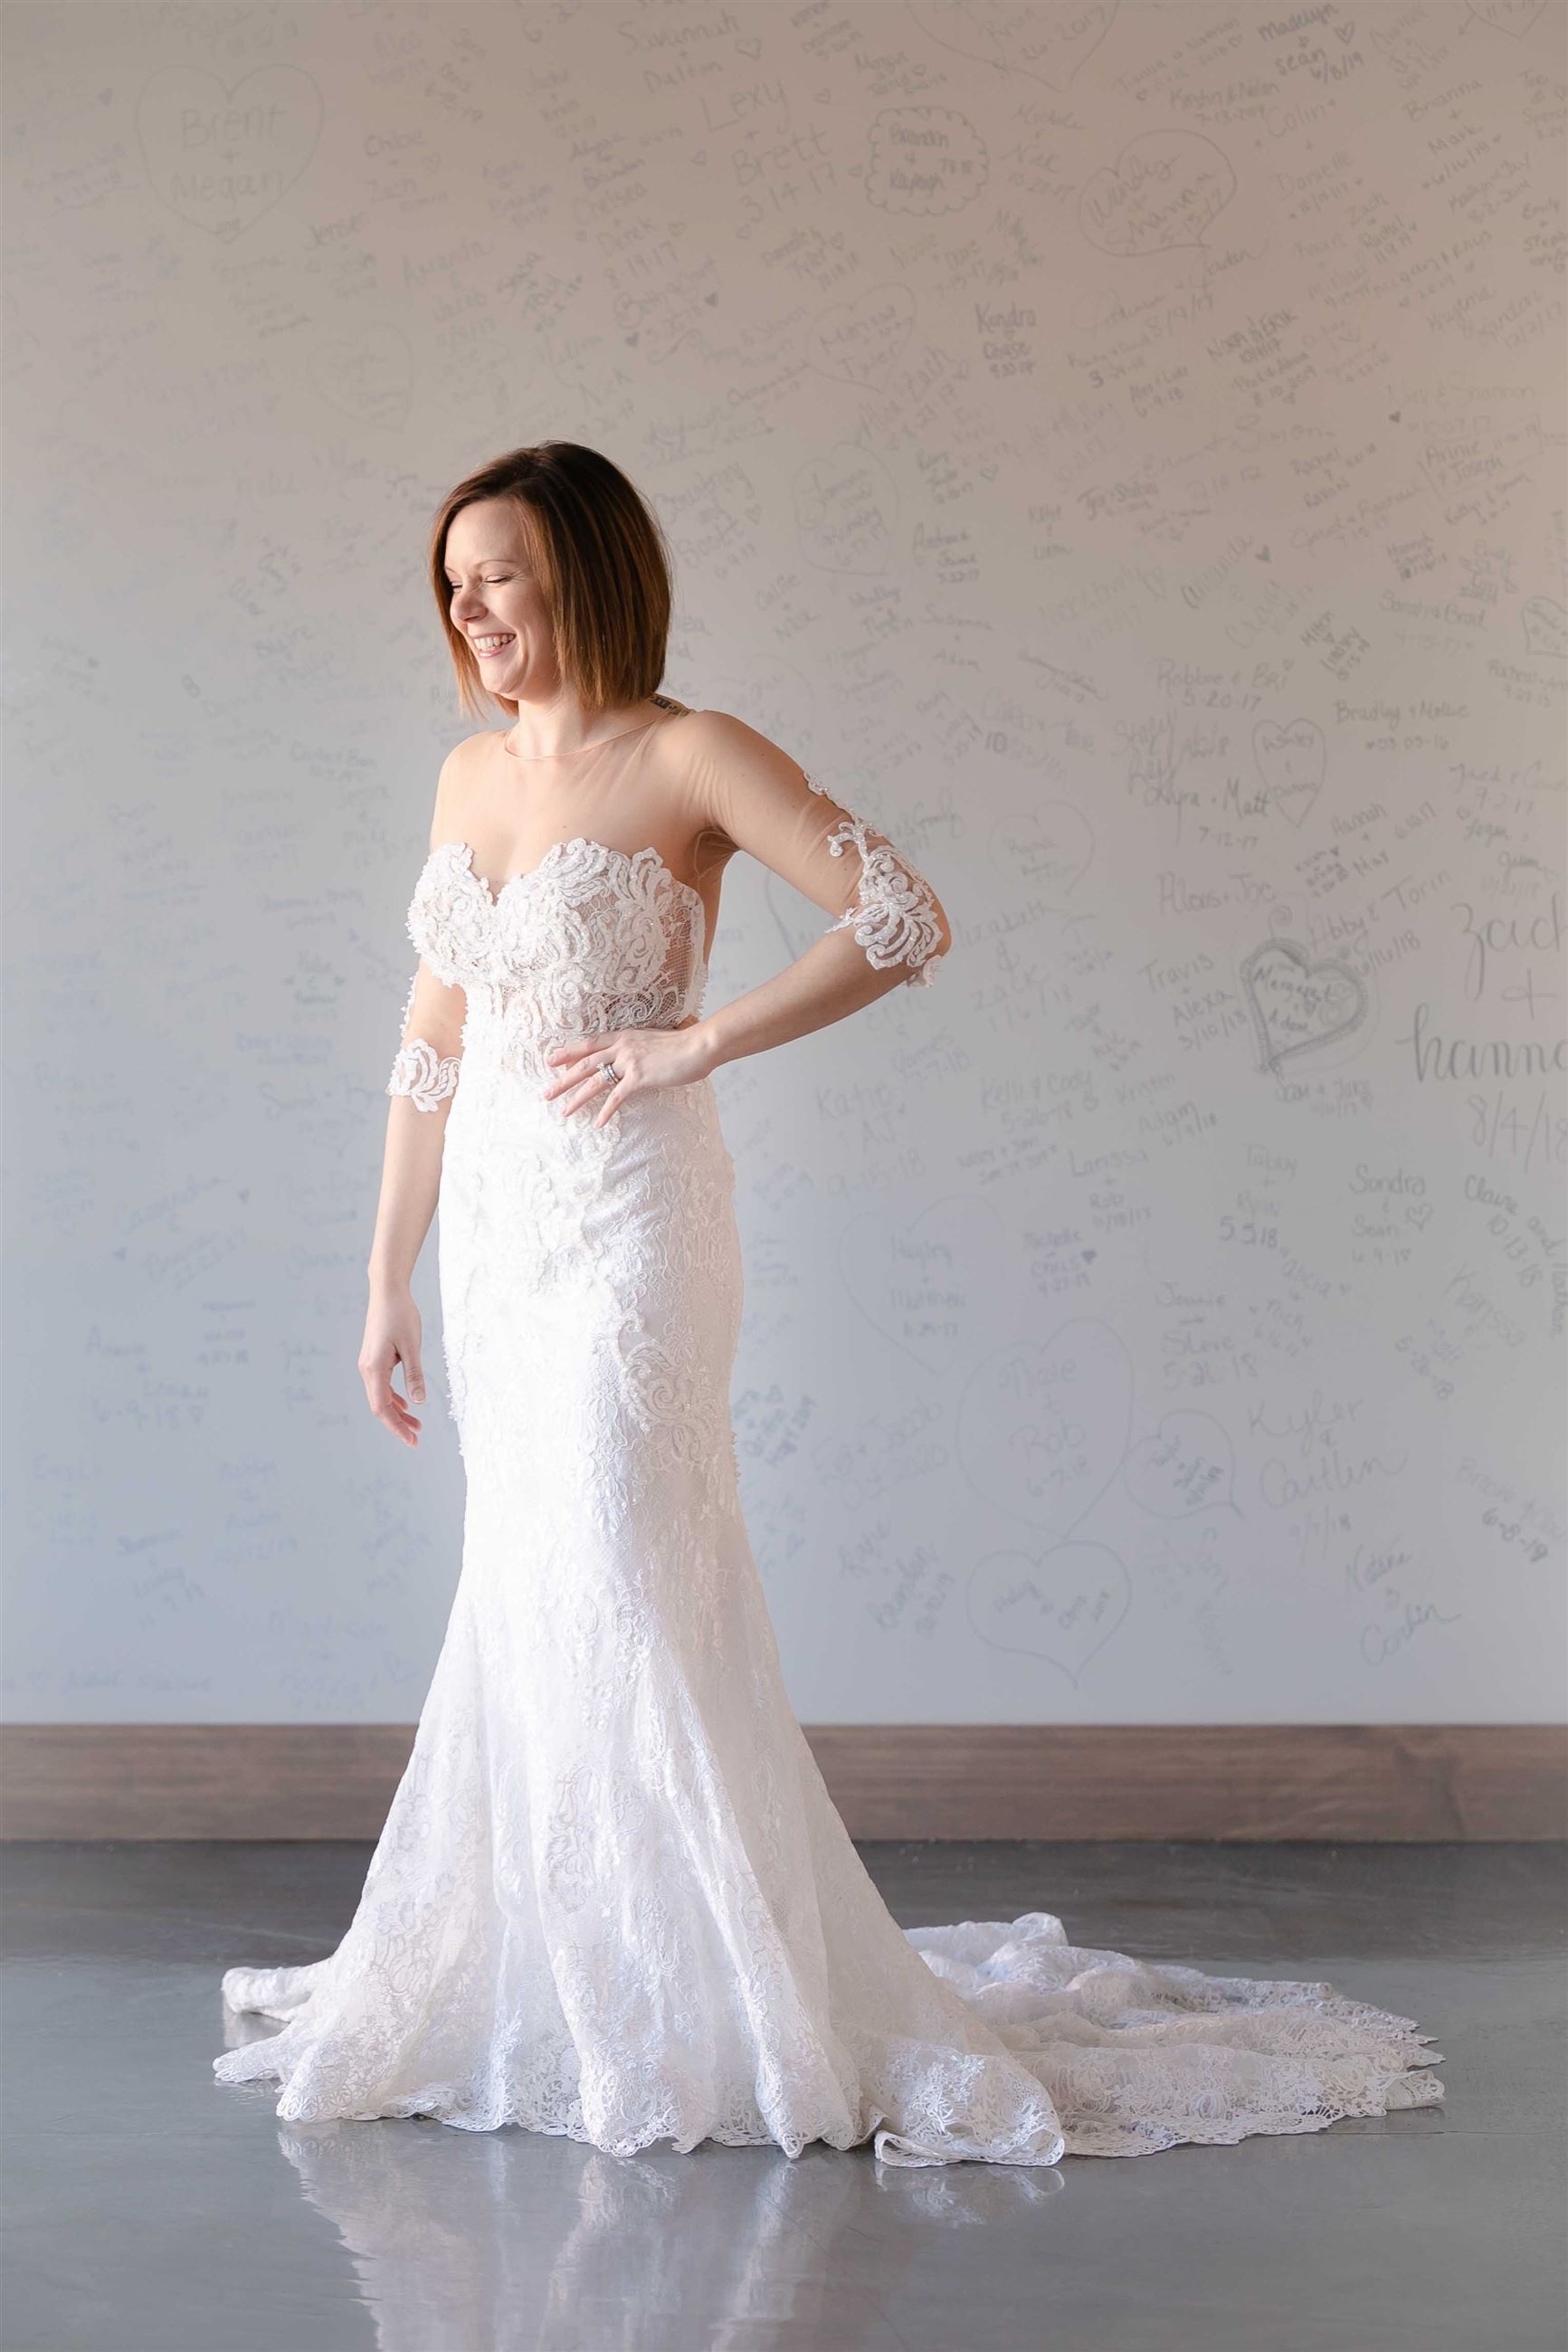 Brea - Size 10 - Ivory - $1499 - Sample price $749